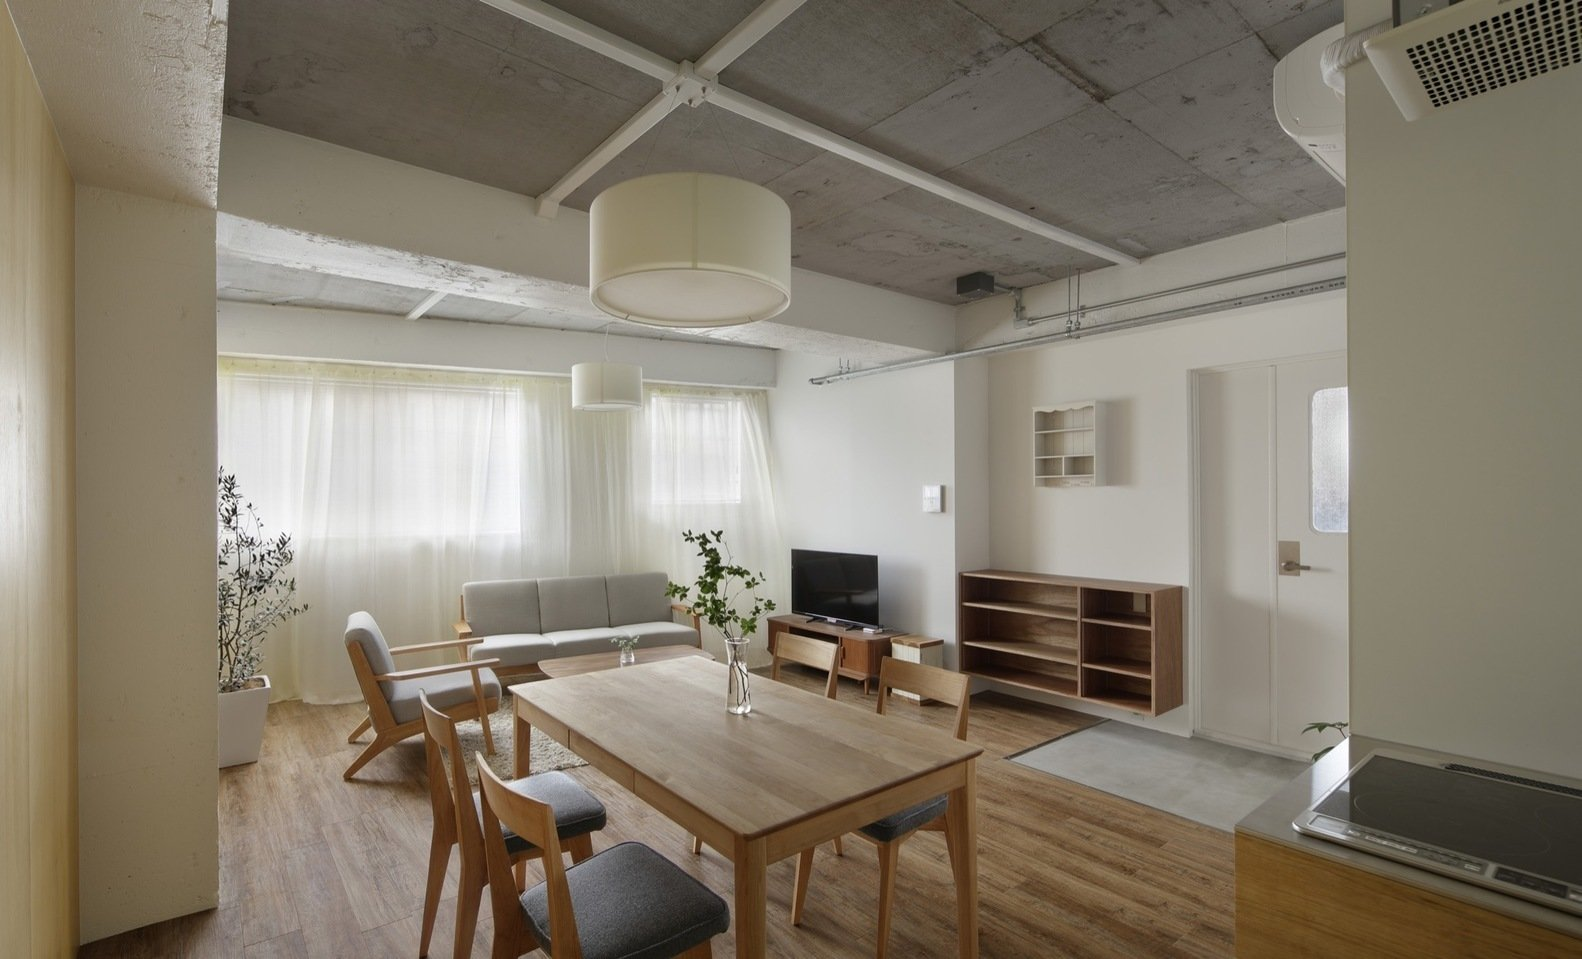 Photo 3 of 4 in Serviced Apartments in Otsuka by Takashi Nishitani Architects